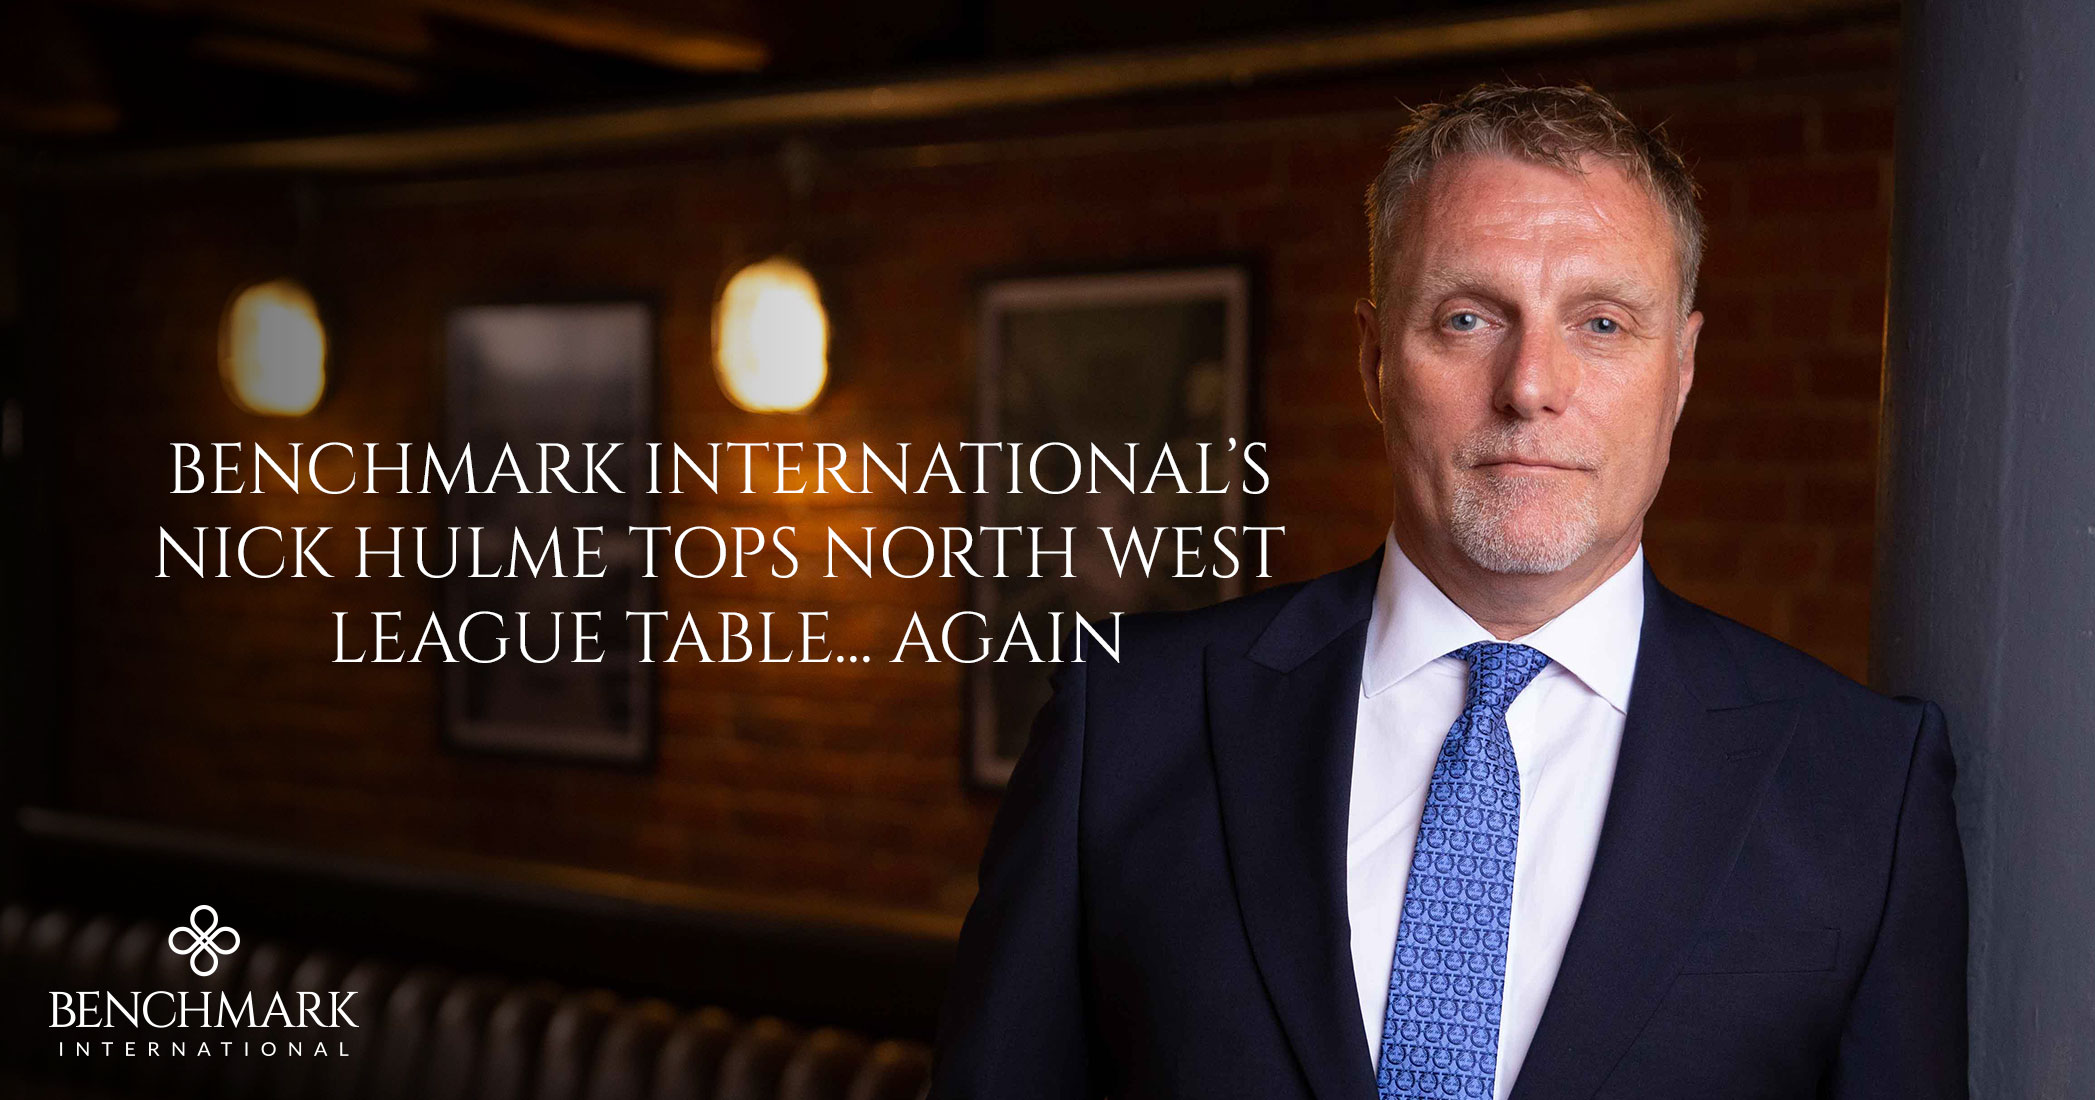 Benchmark International's Nick Hulme Tops North West League Table Again